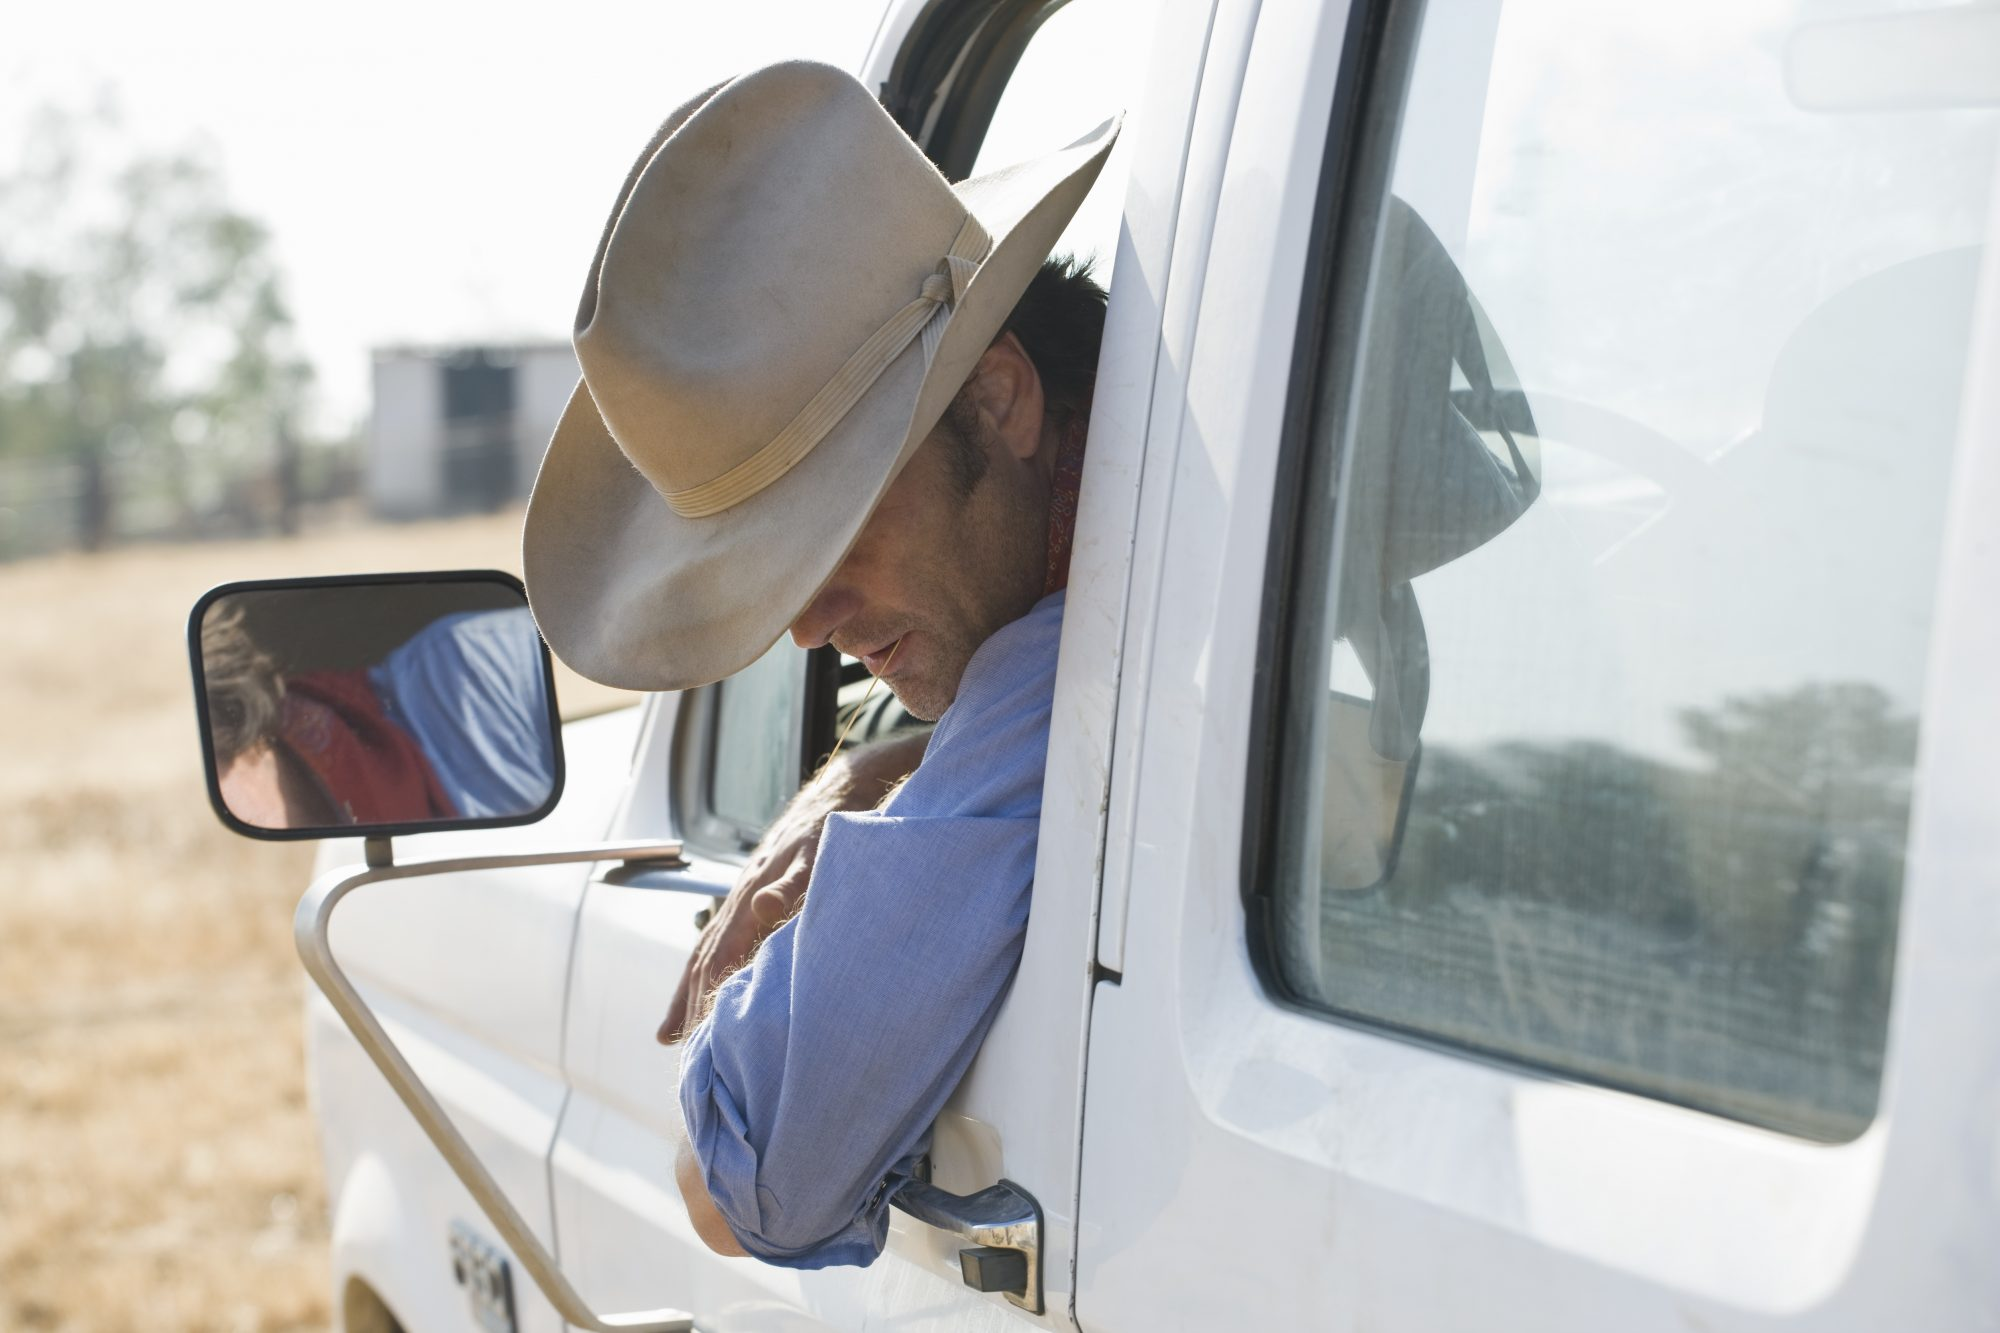 A man leaning out of his truck and looking down